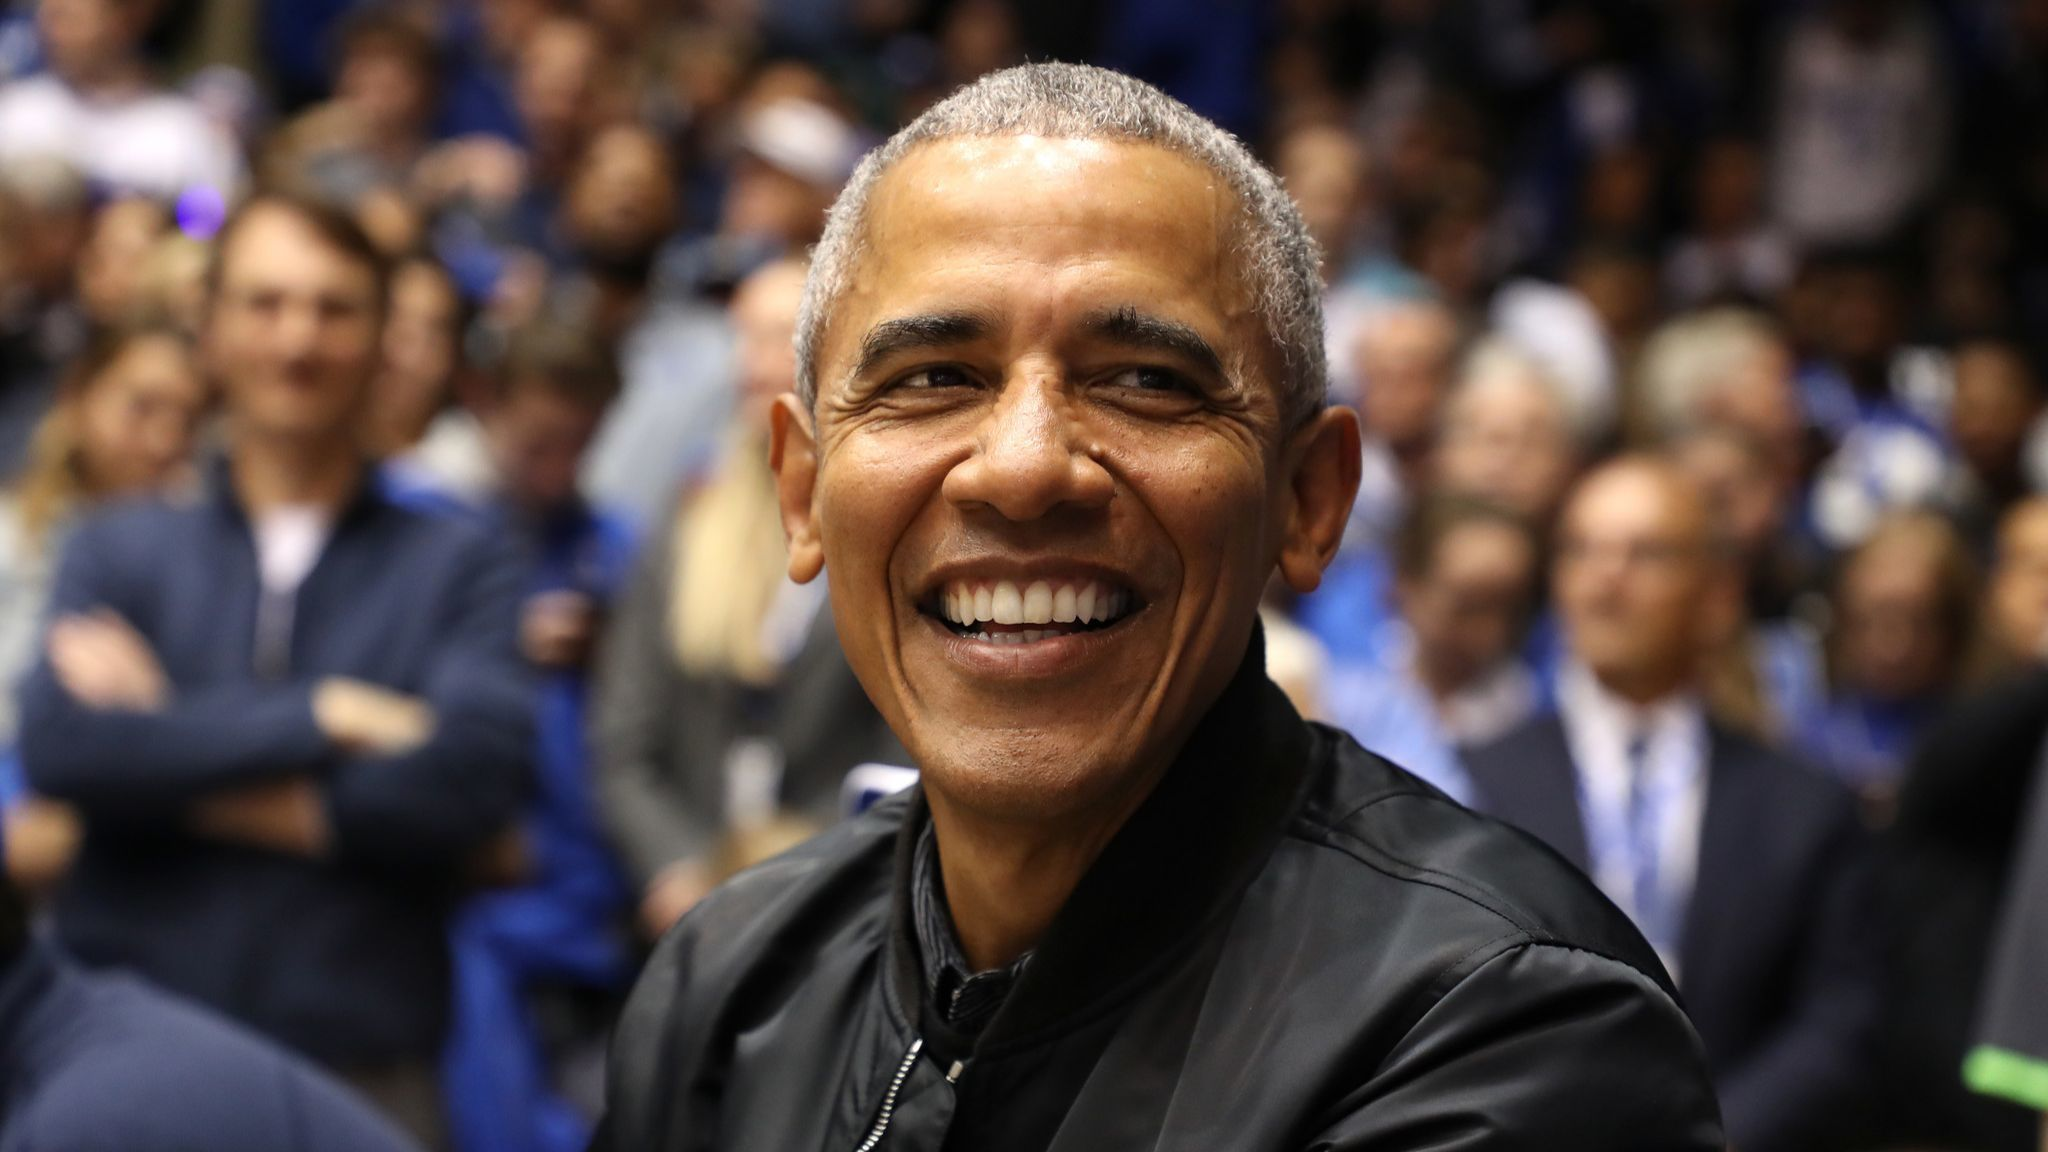 Barack Obama hasn't endorsed a Chicago mayoral candidate, but who cares?